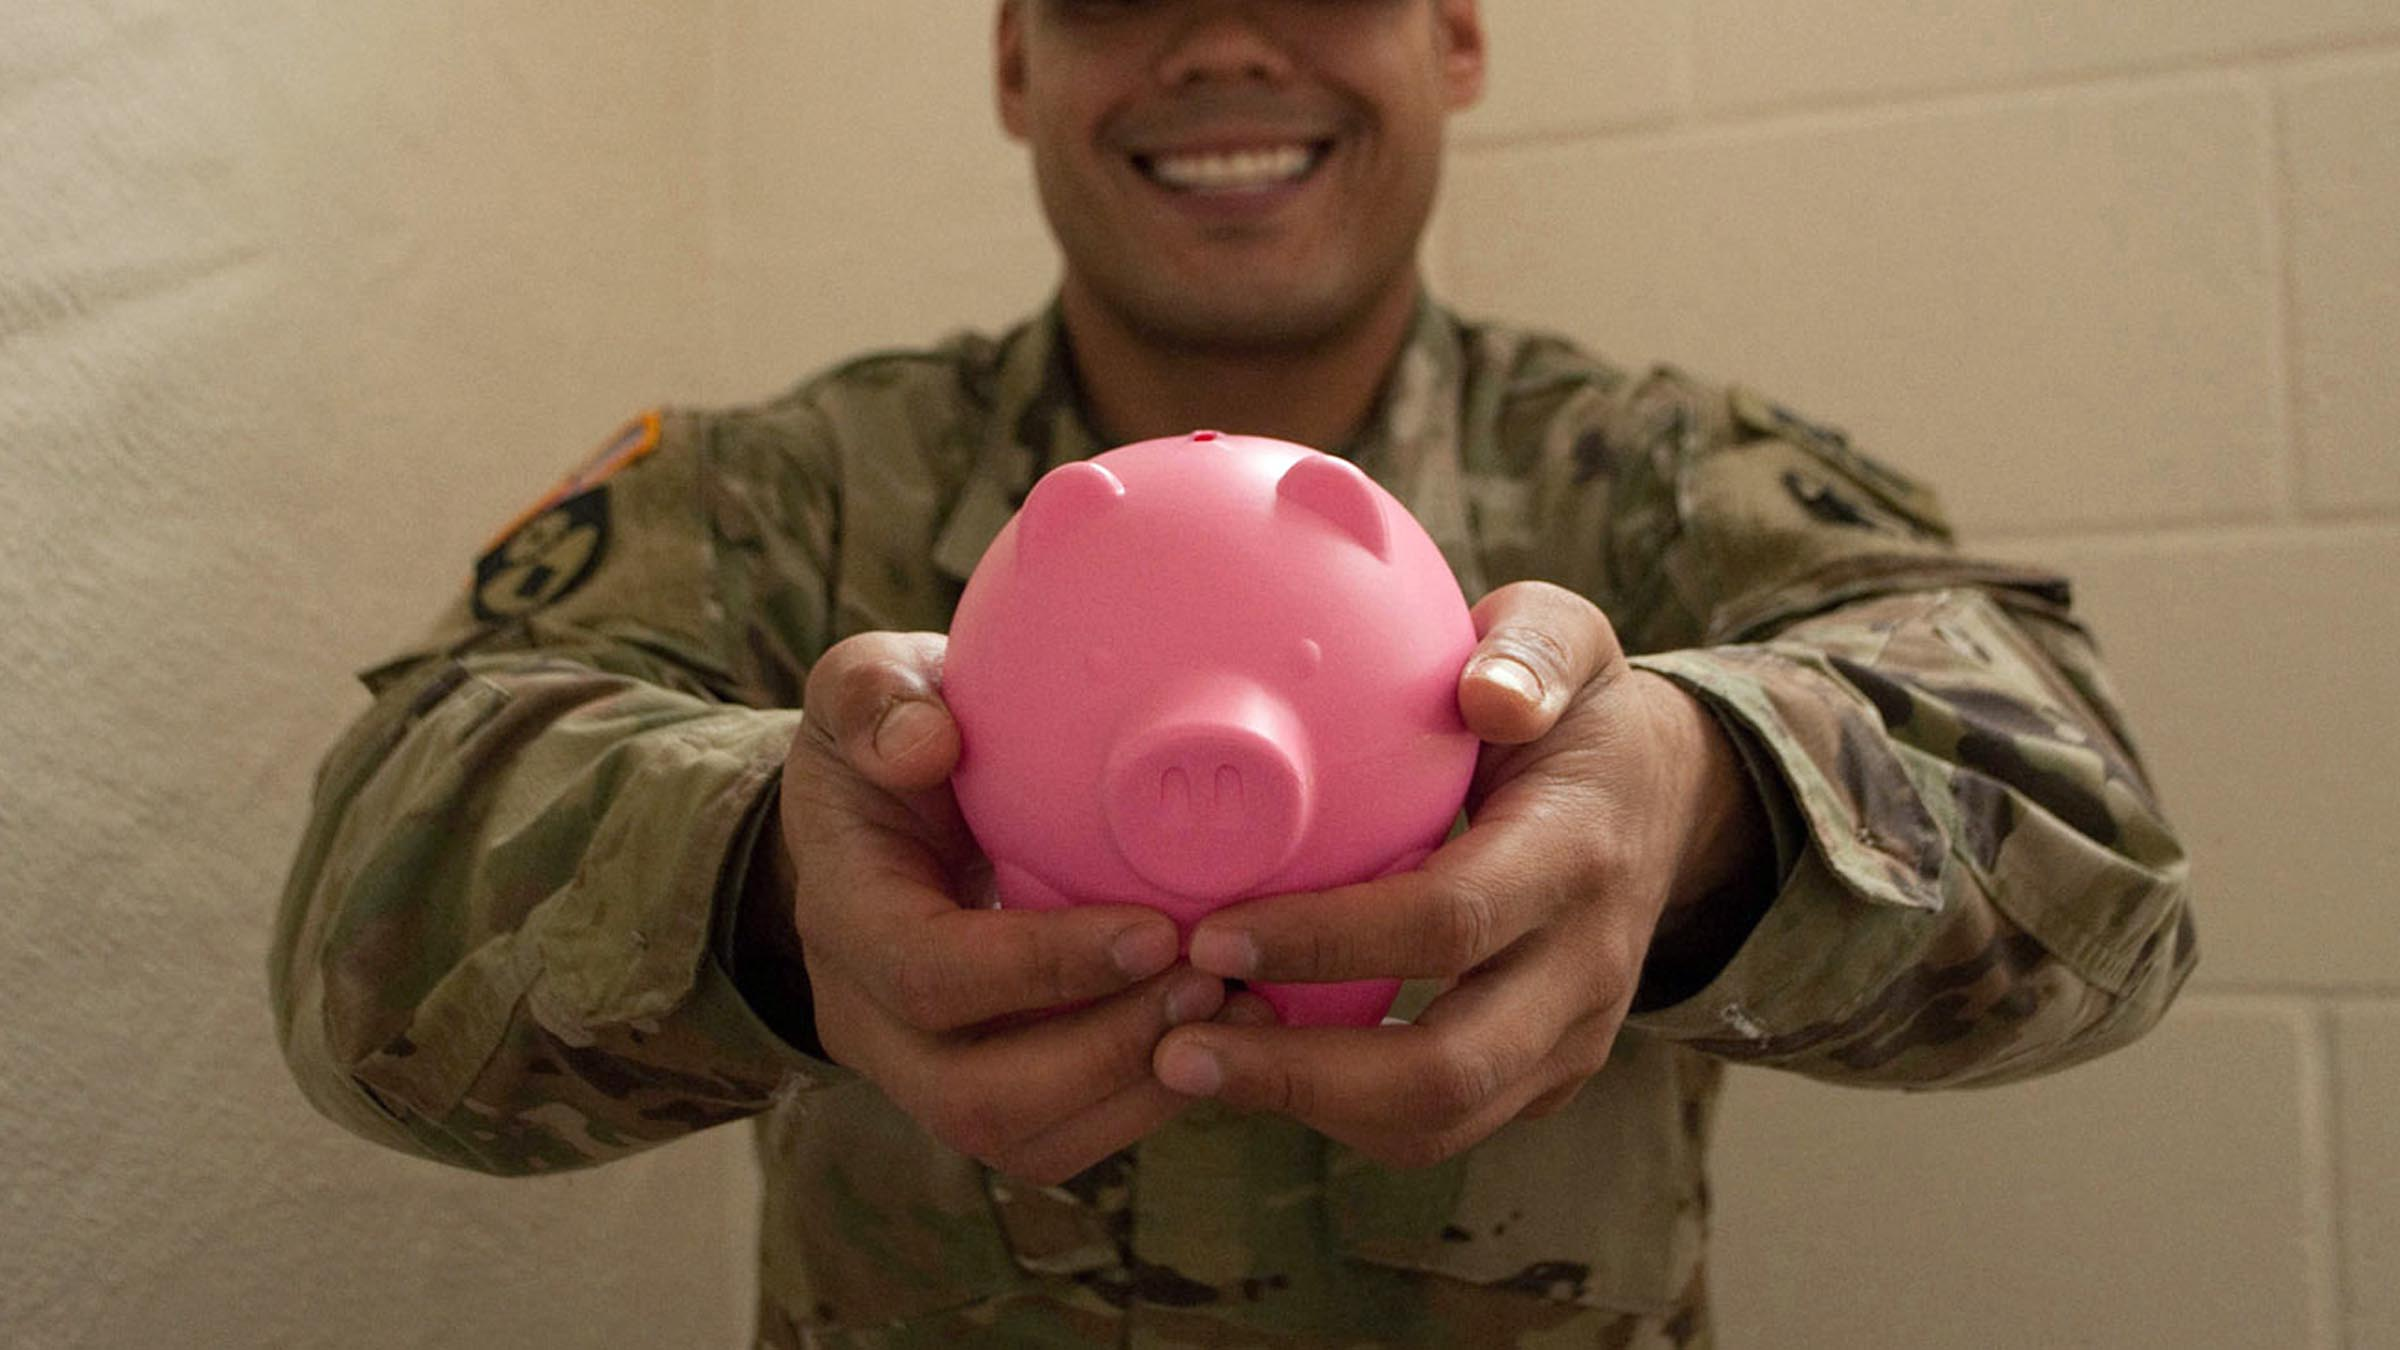 A service member smiles and holds up a pink piggy bank